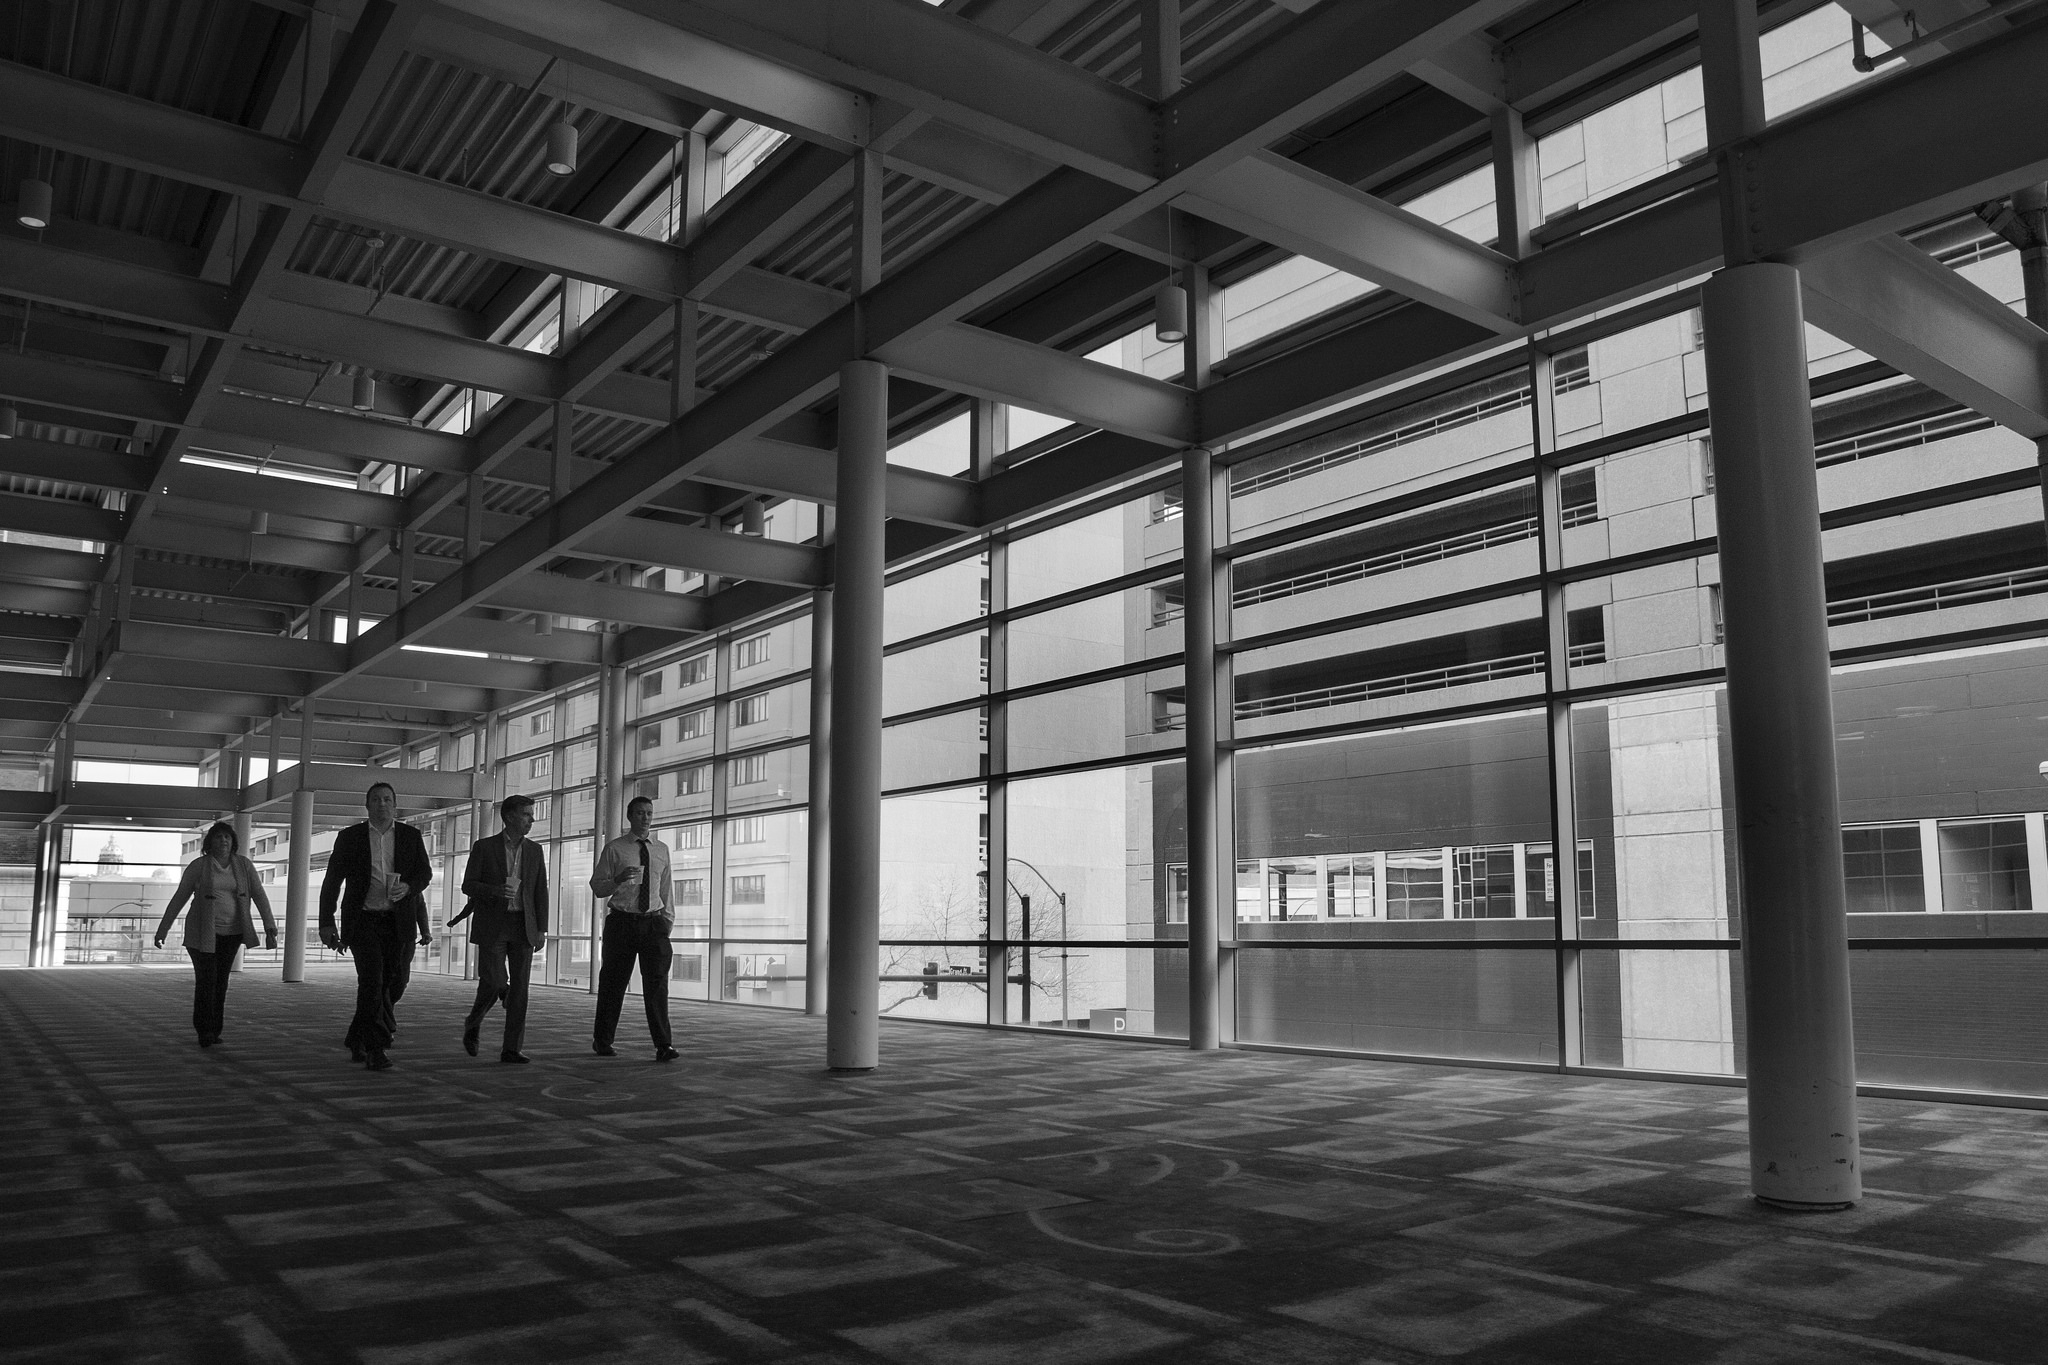 Skywalk 3/10 - Lunch Walkers - © 2016 Michael F. Hiatt